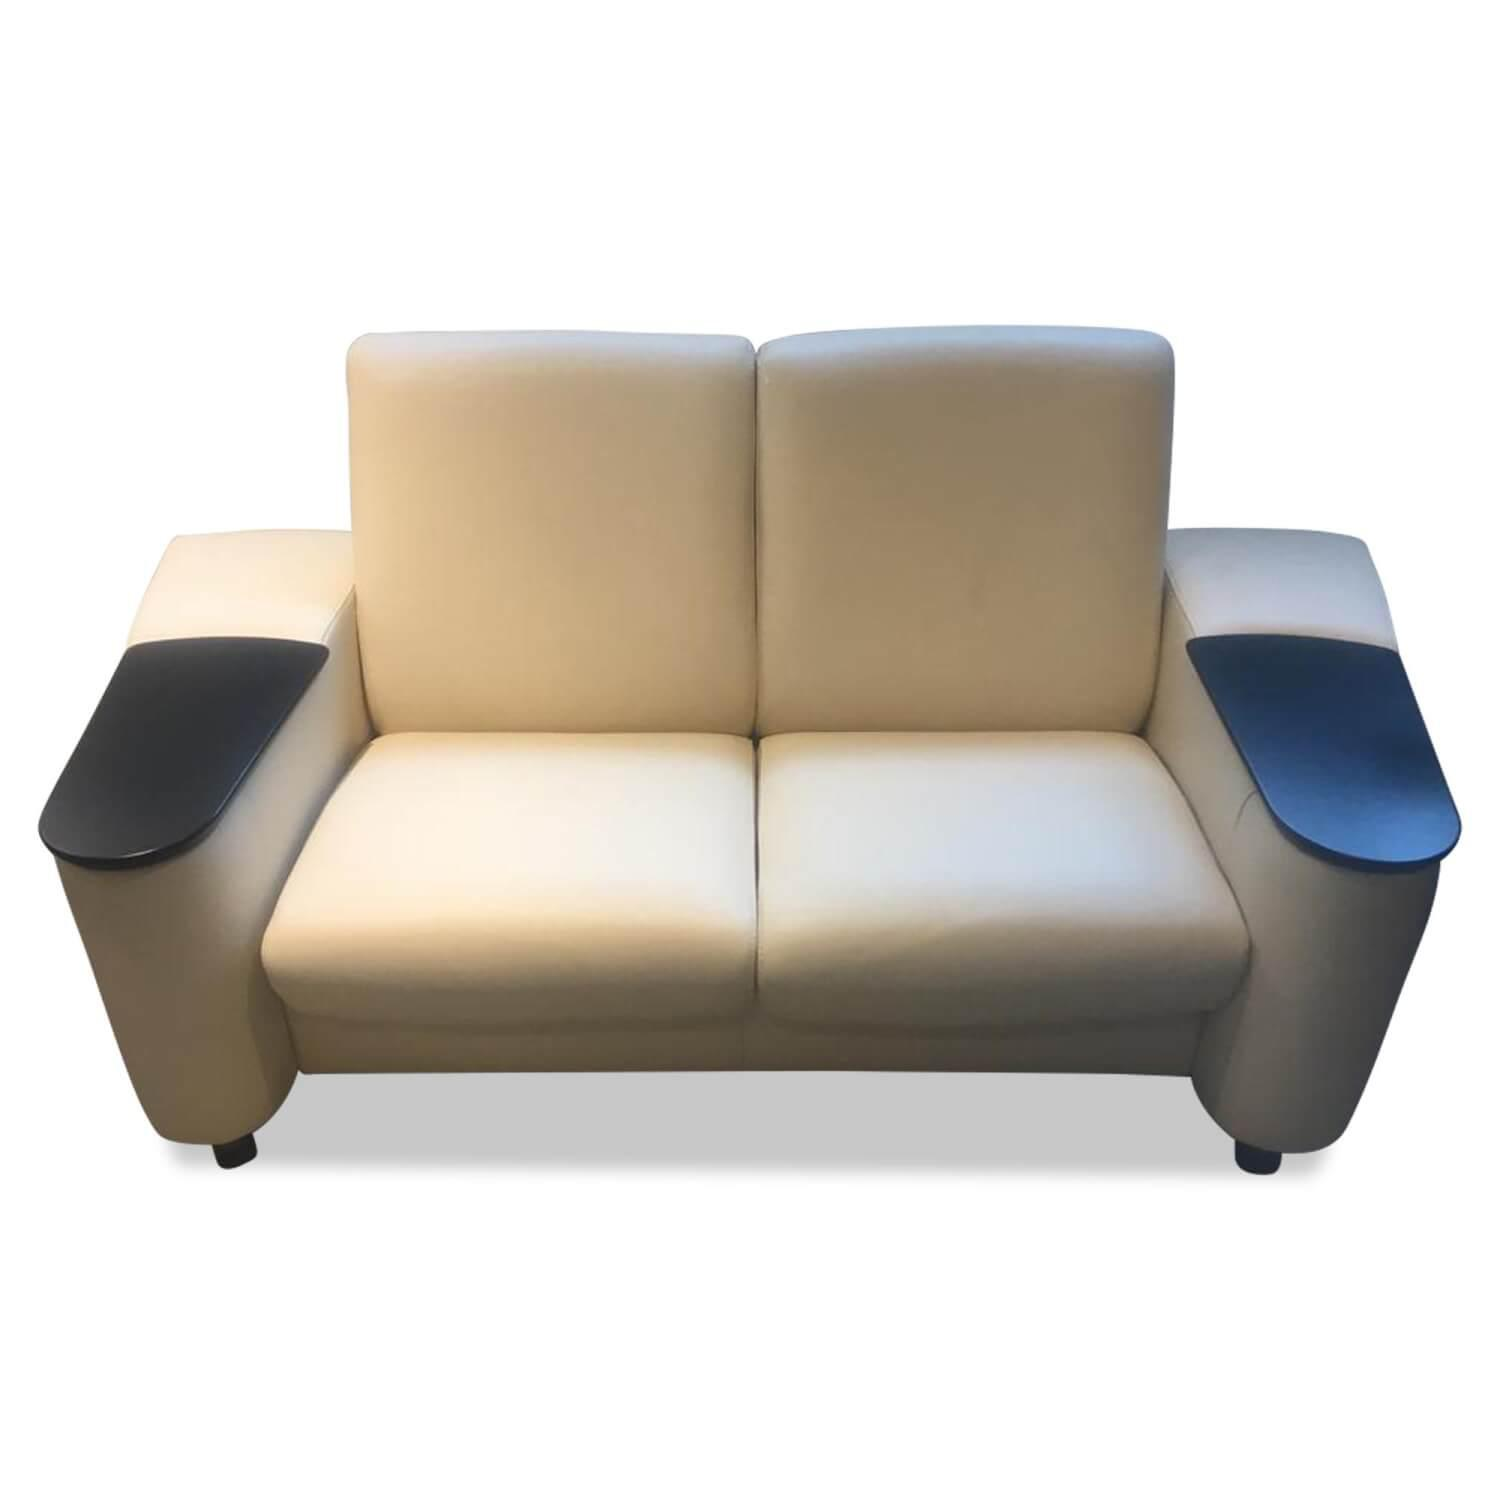 Full Size of Stressless Sofa Ebay Uk Leather Furniture Used Review Sofas And Chairs Couches Sale Arion Leder Paloma Vanilla Gnstig Mit Schlaffunktion Federkern Chesterfield Sofa Stressless Sofa